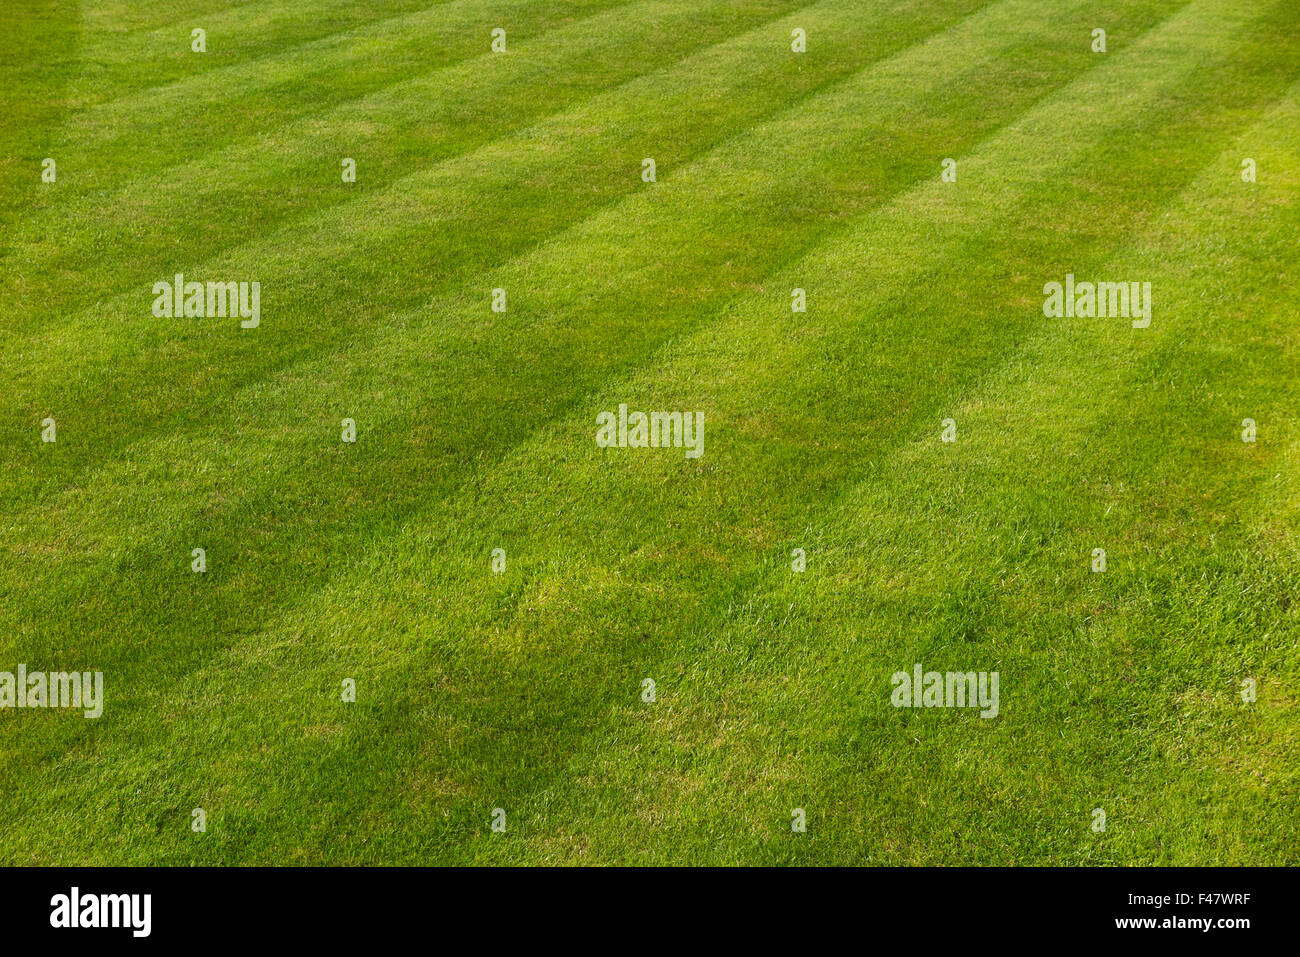 Lawn Stripes & striped autumnal grass on a well defined lawn / early autumn The lawn is not quite perfect but - Stock Image